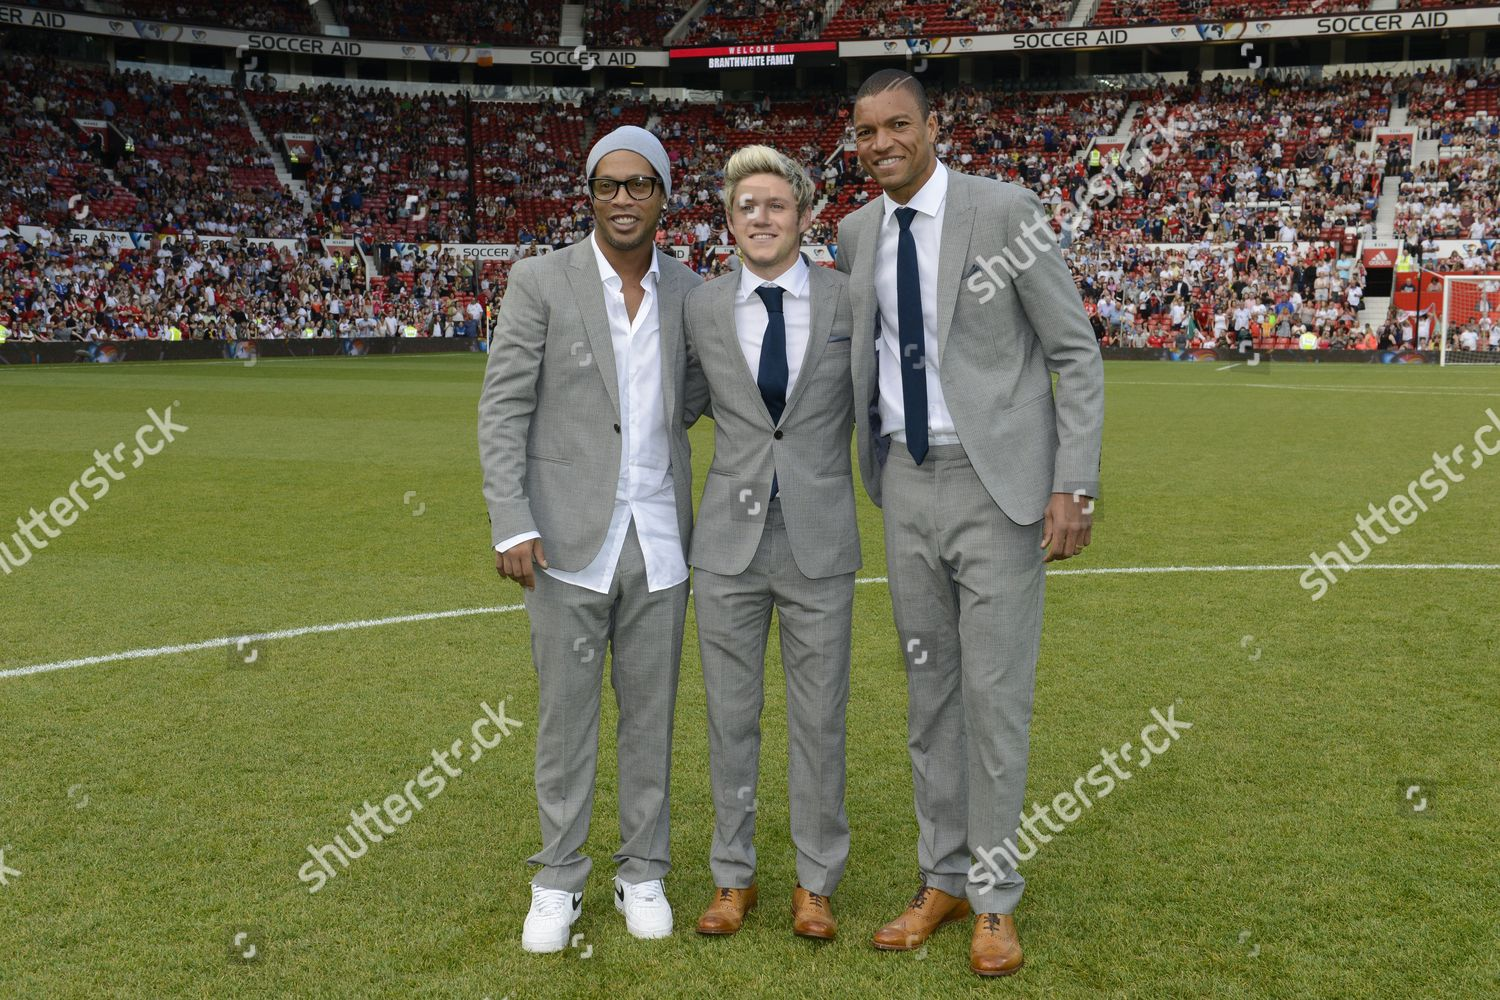 ¿Cuánto mide Niall Horan? - Altura - Real height Soccer-aid-unicef-charity-football-match-old-trafford-manchester-britain-shutterstock-editorial-5706130ey